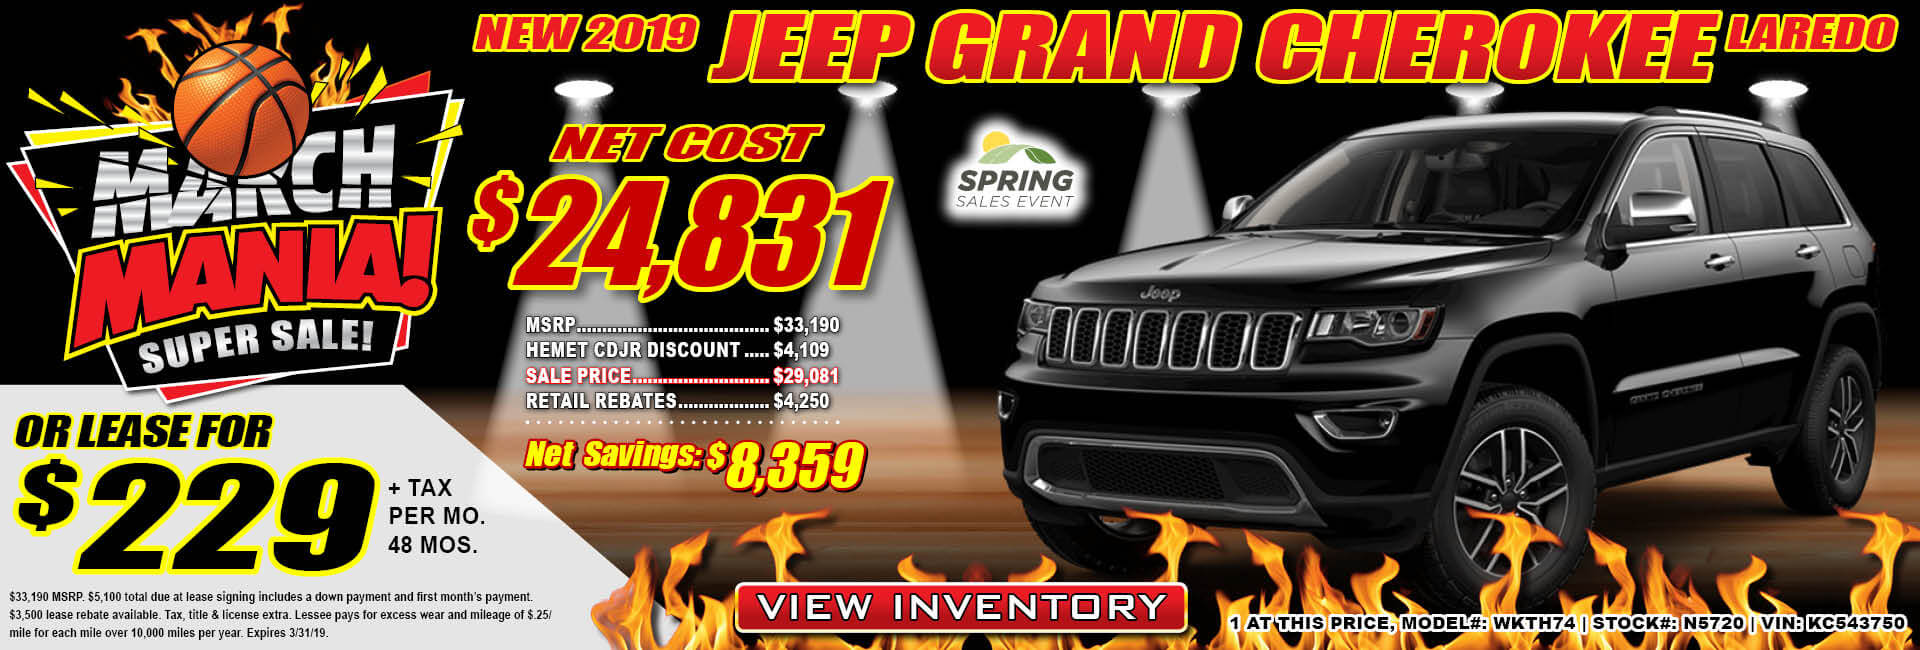 Jeep Grand Cherokee $229 Lease